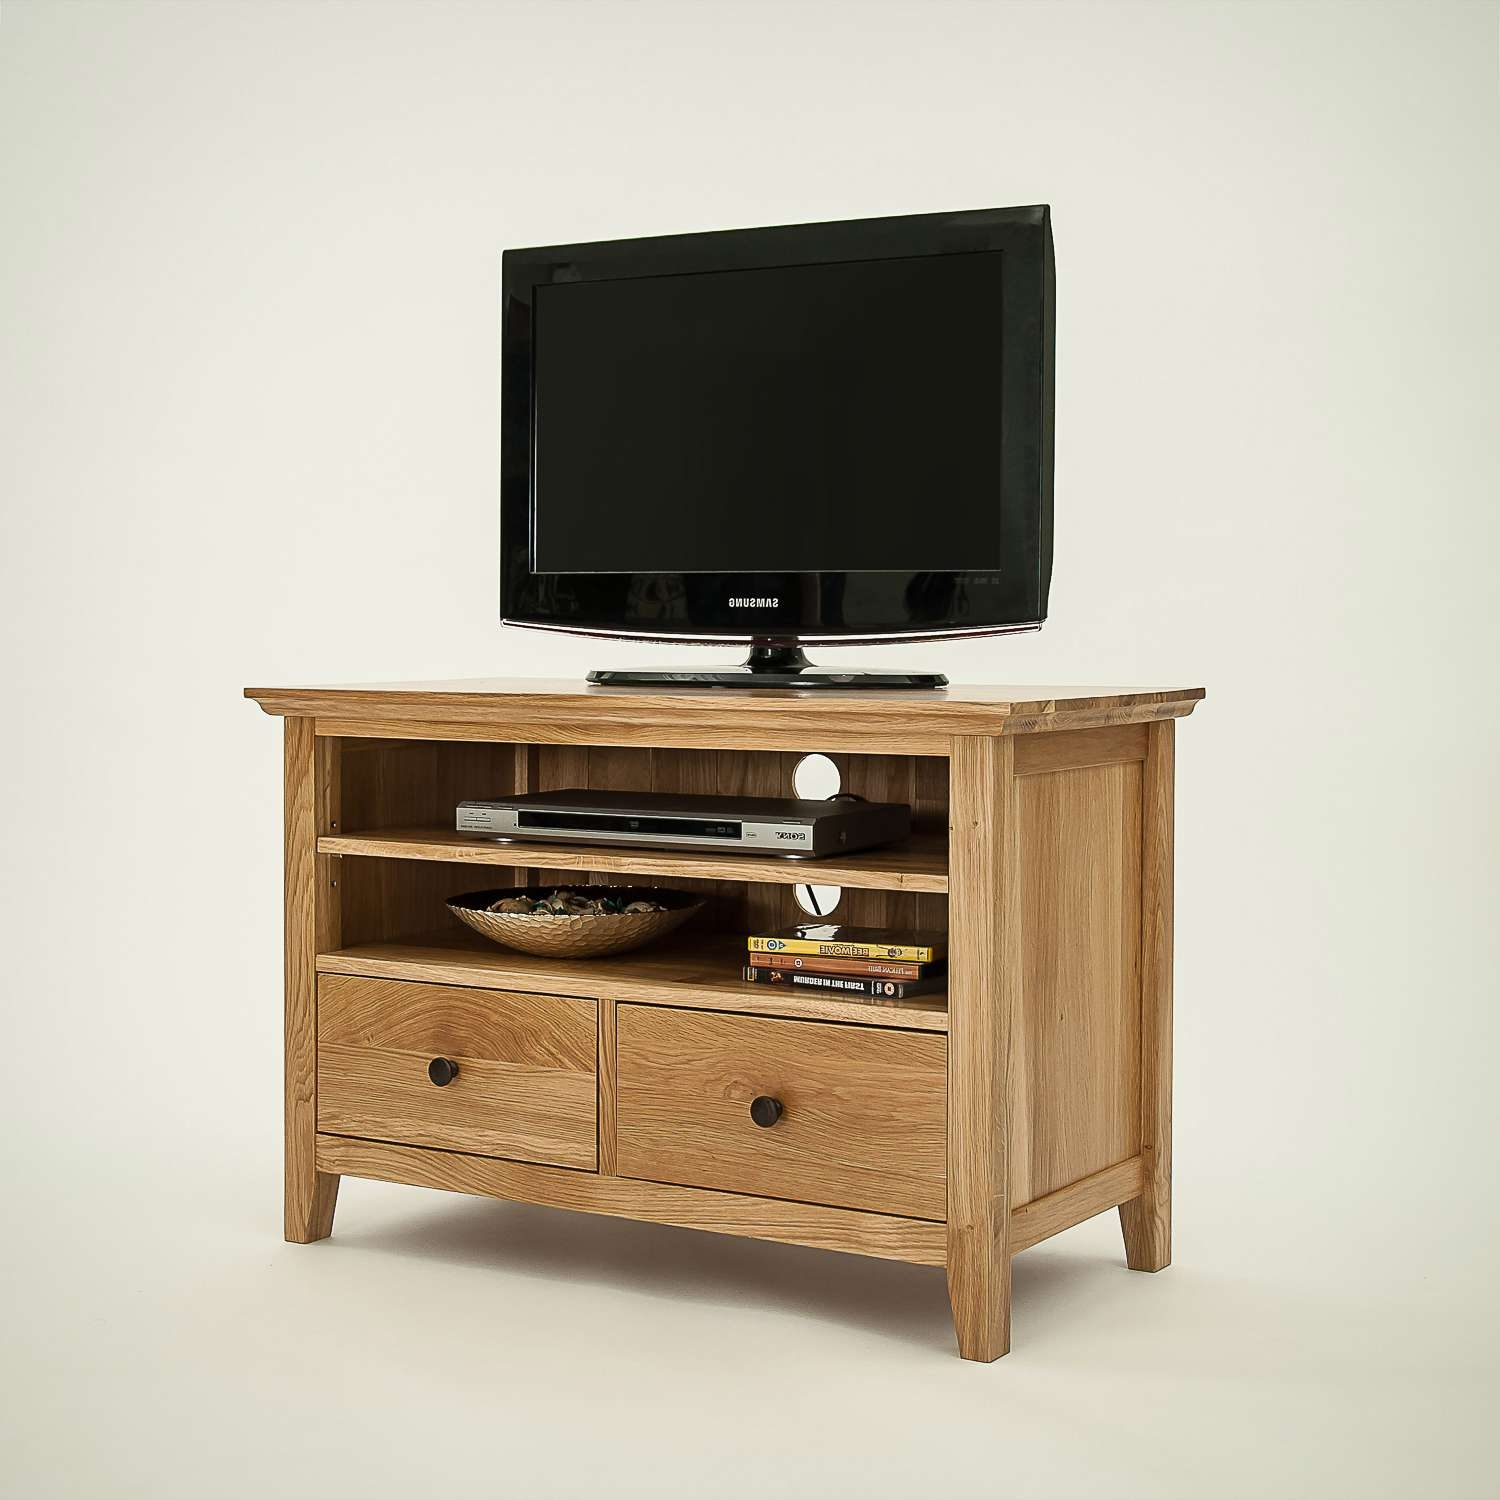 Artisan Rustic Oak Small Tv Cabinet | Hampshire Furniture Throughout Oak Tv Cabinets (View 19 of 20)